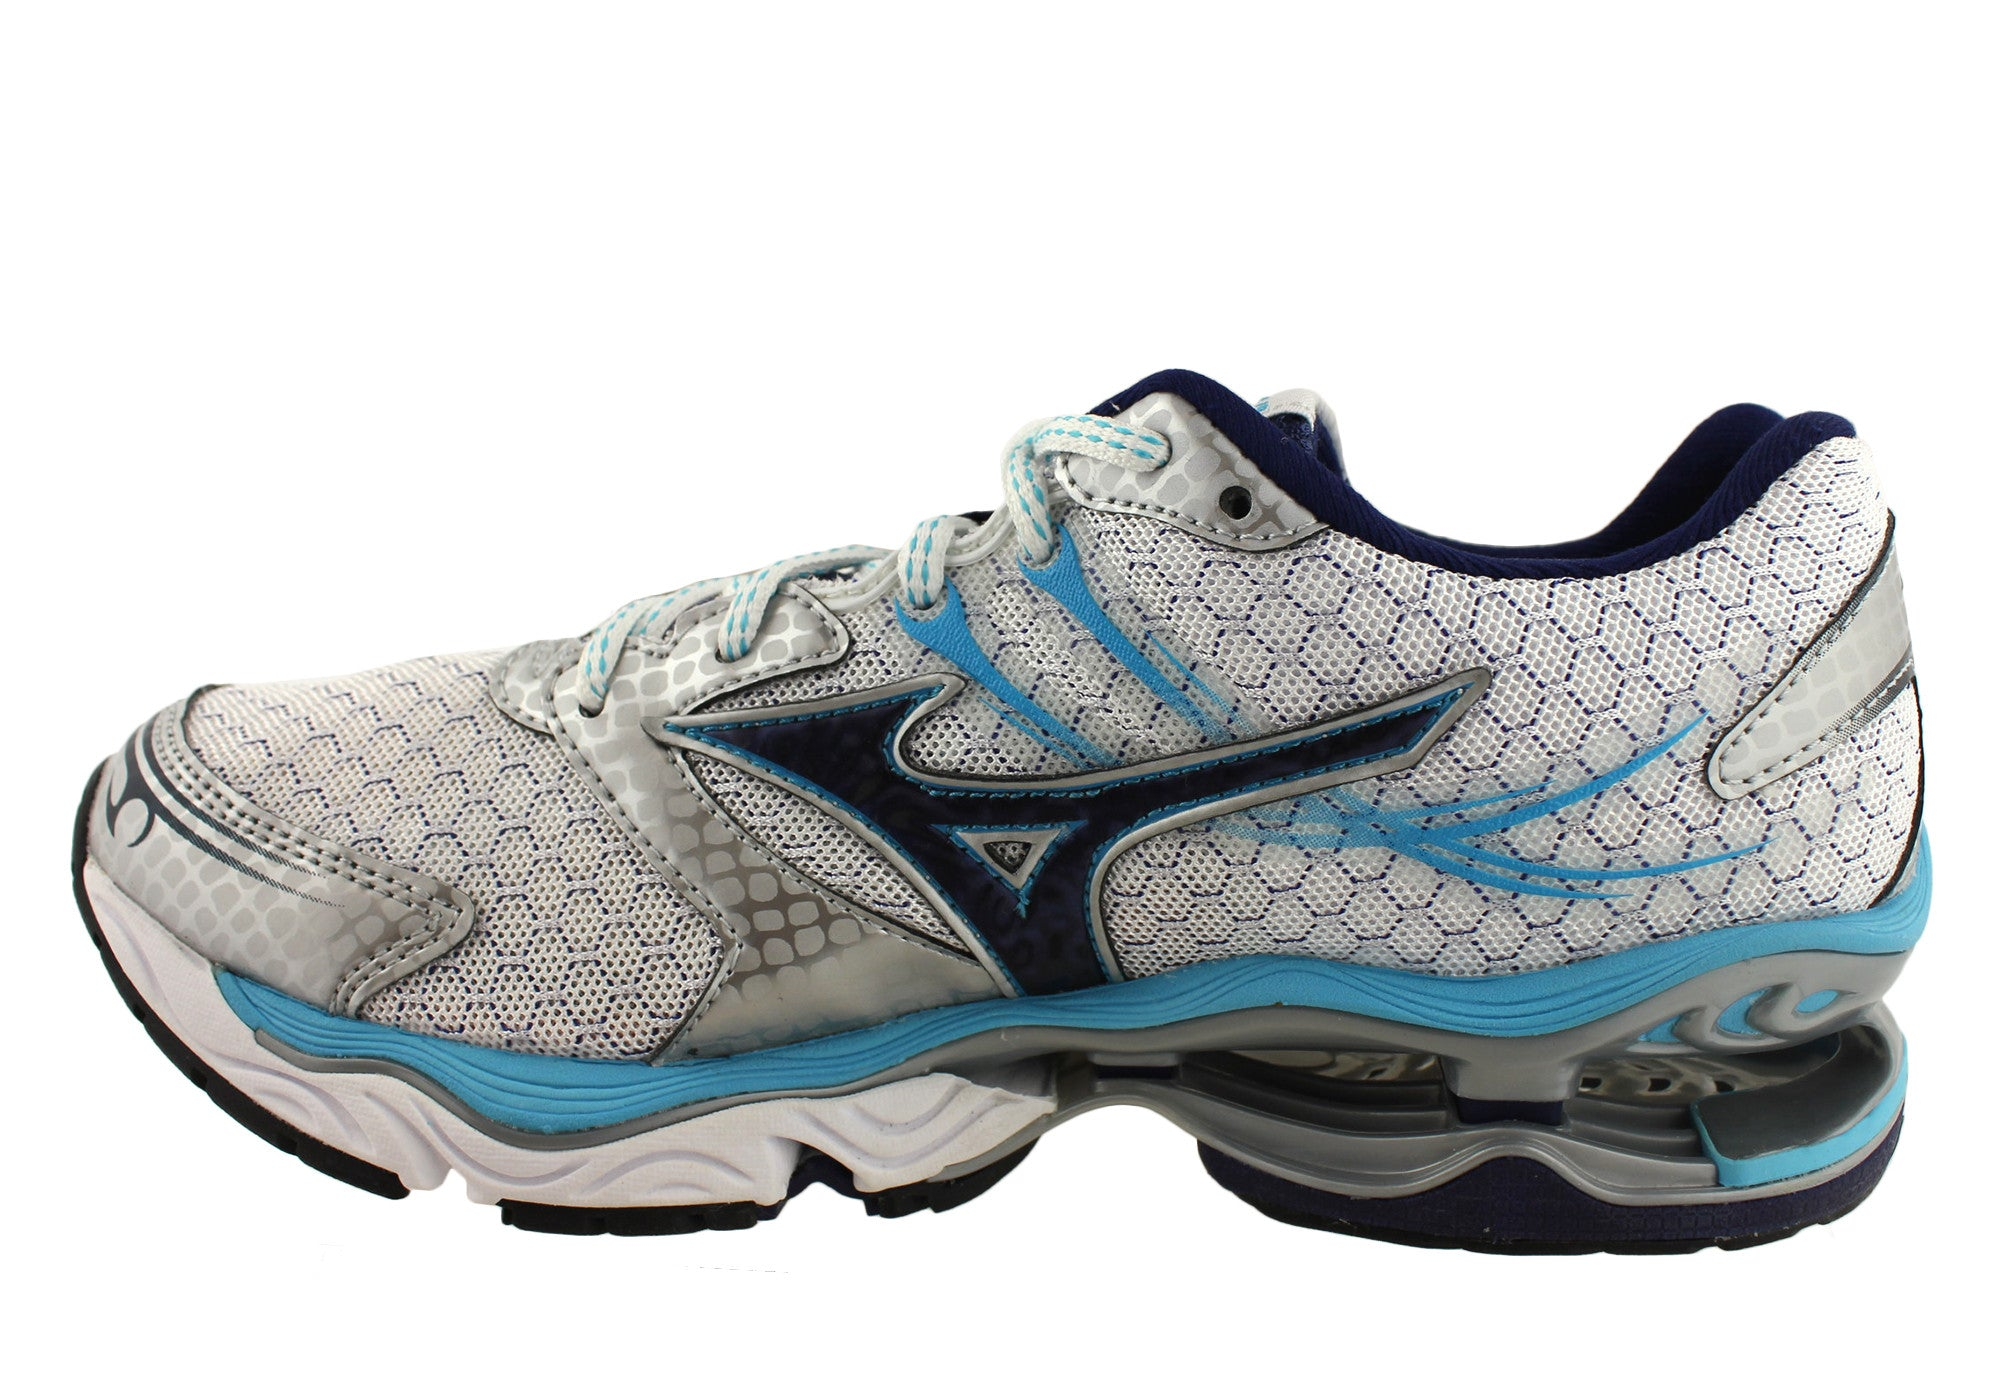 the best attitude dc816 04d51 Mizuno Wave Creation 14 Womens Running Shoes